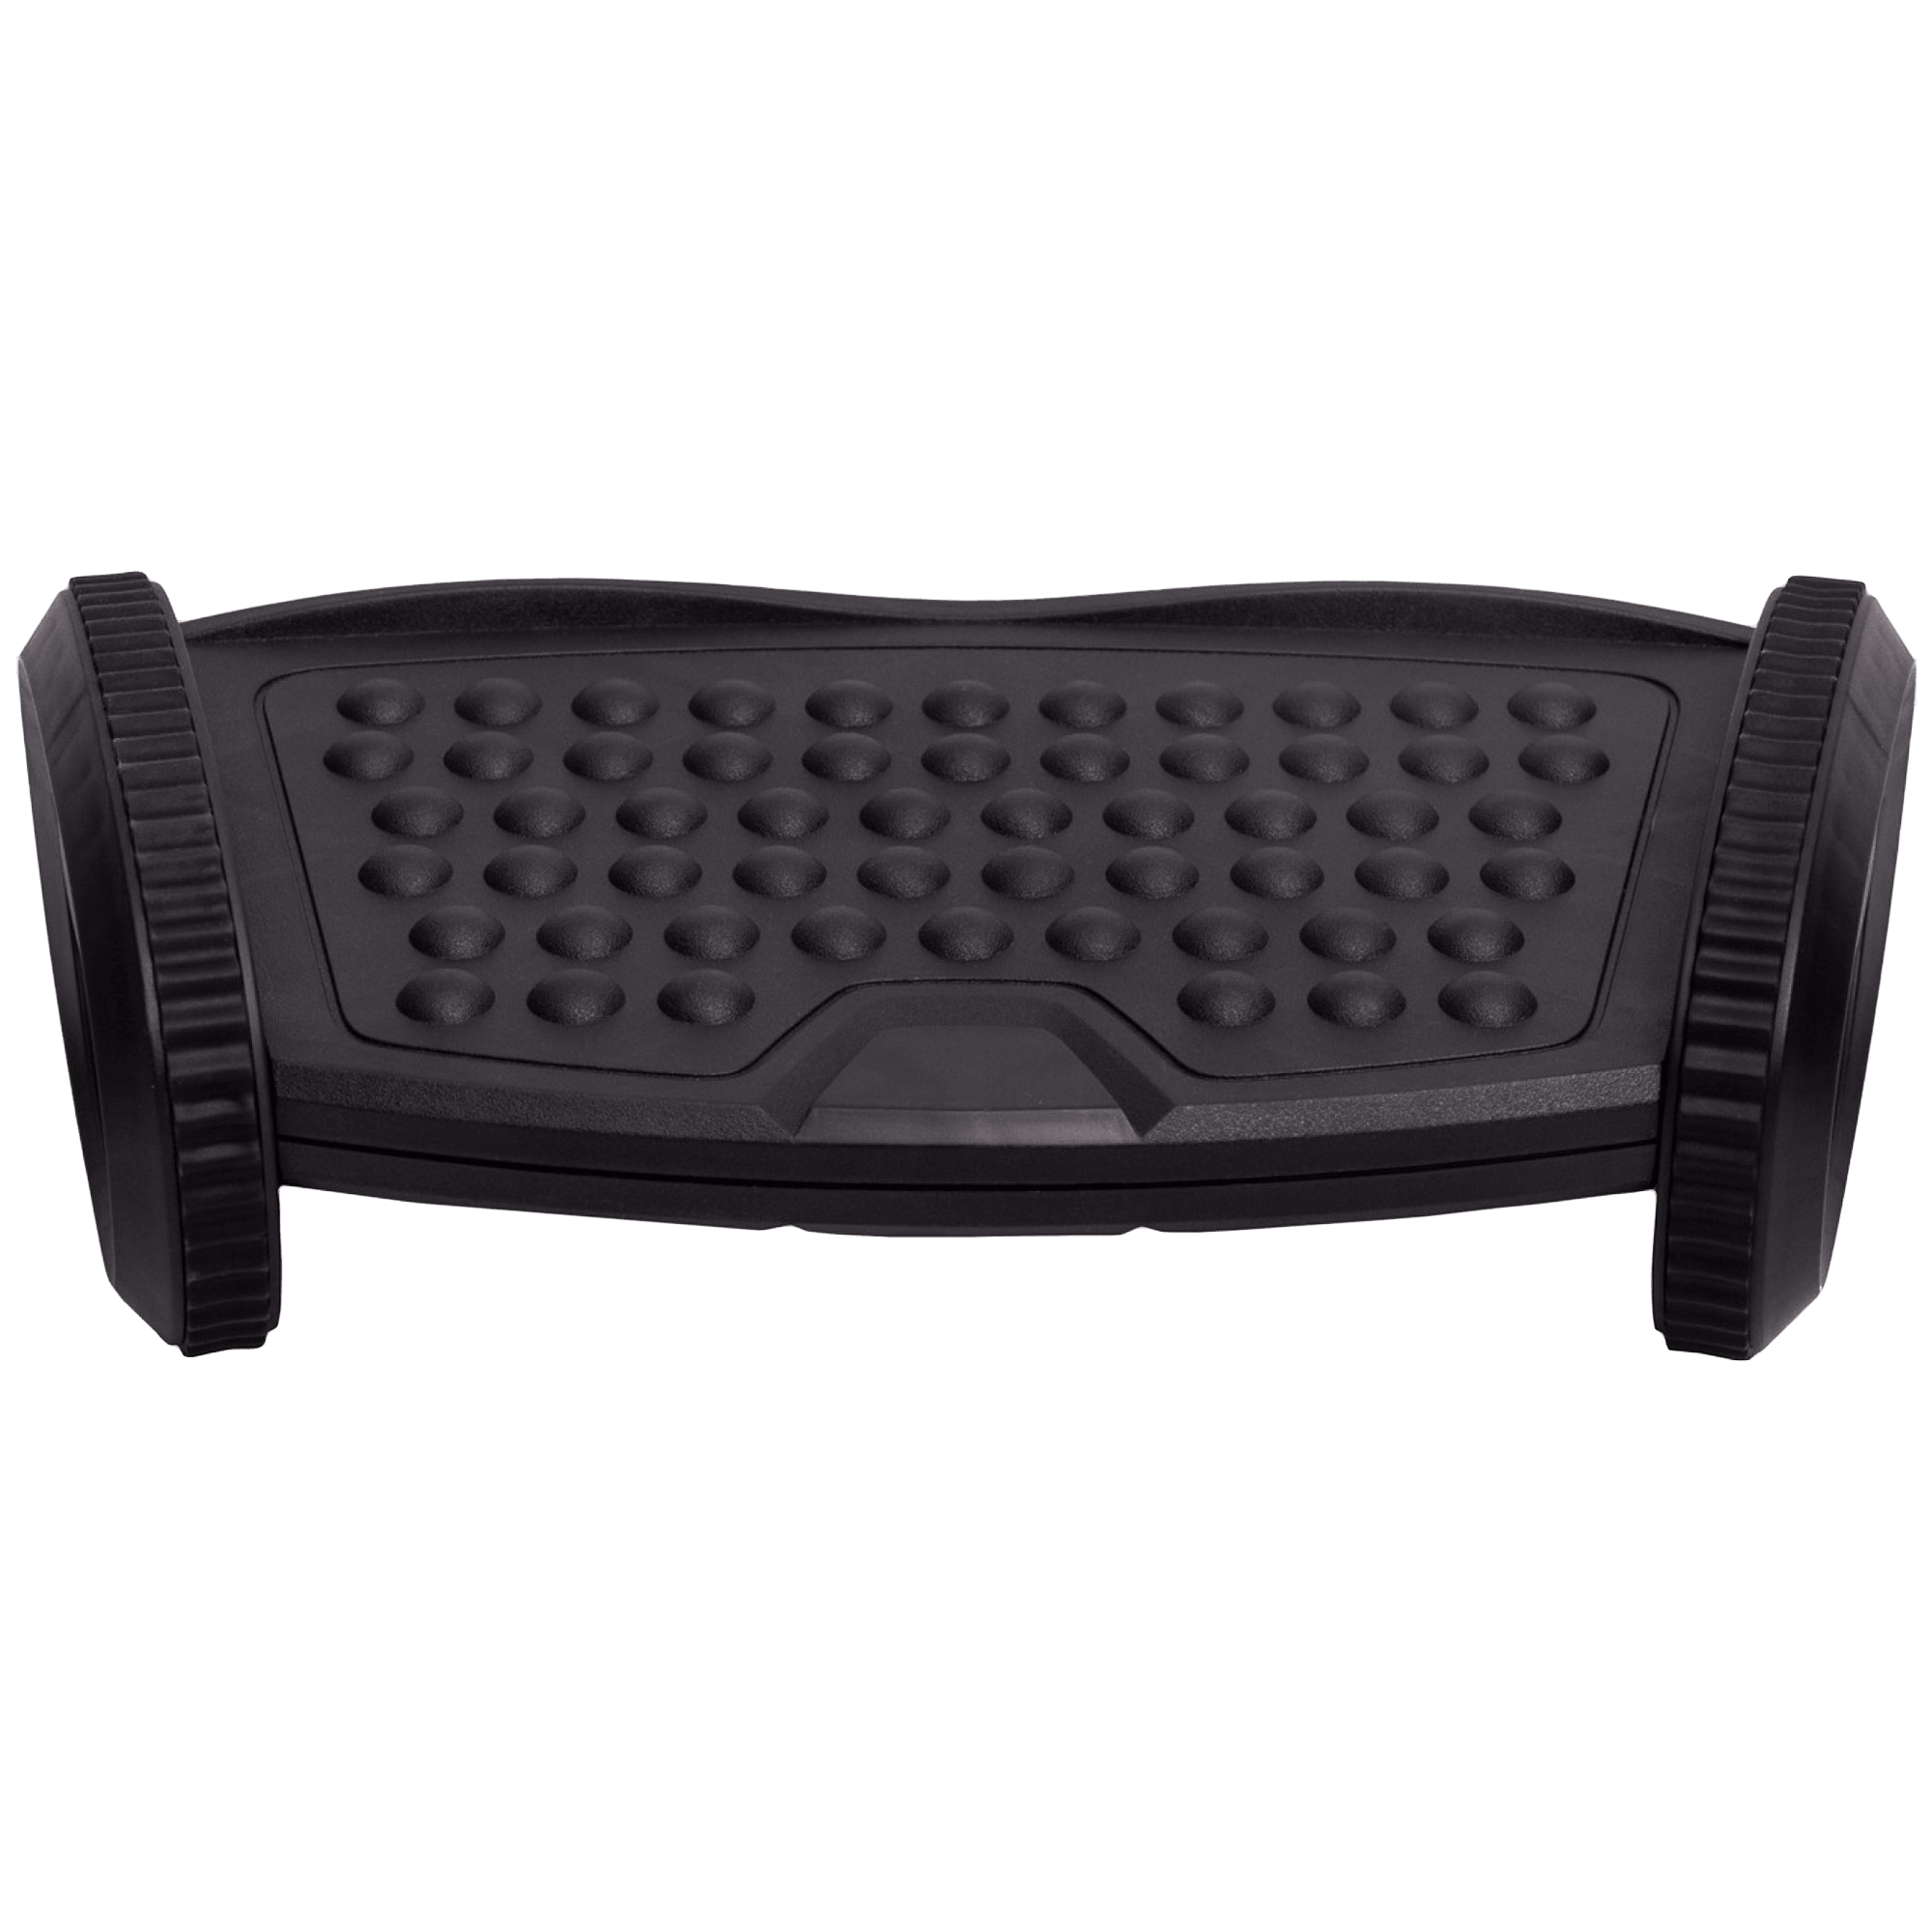 Palo PALO011 Feet Massager (Rubber Padded Backing, Kanfa293, Black)